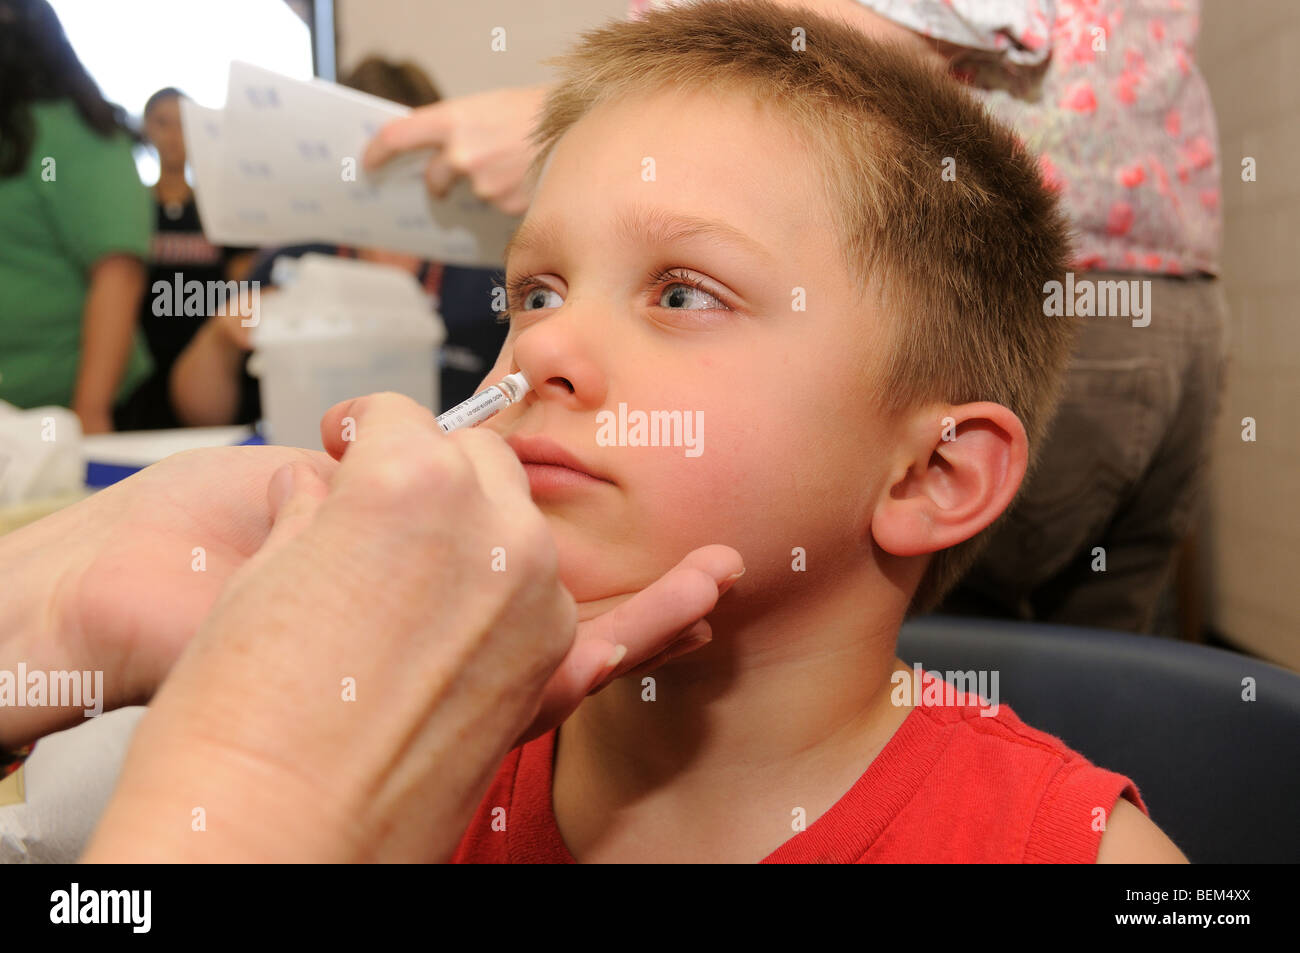 A 4-year-old boy is vaccinated for the 2009 H1N1 influenza, also known as the Swine Flu, with an intranasal vaccine. - Stock Image